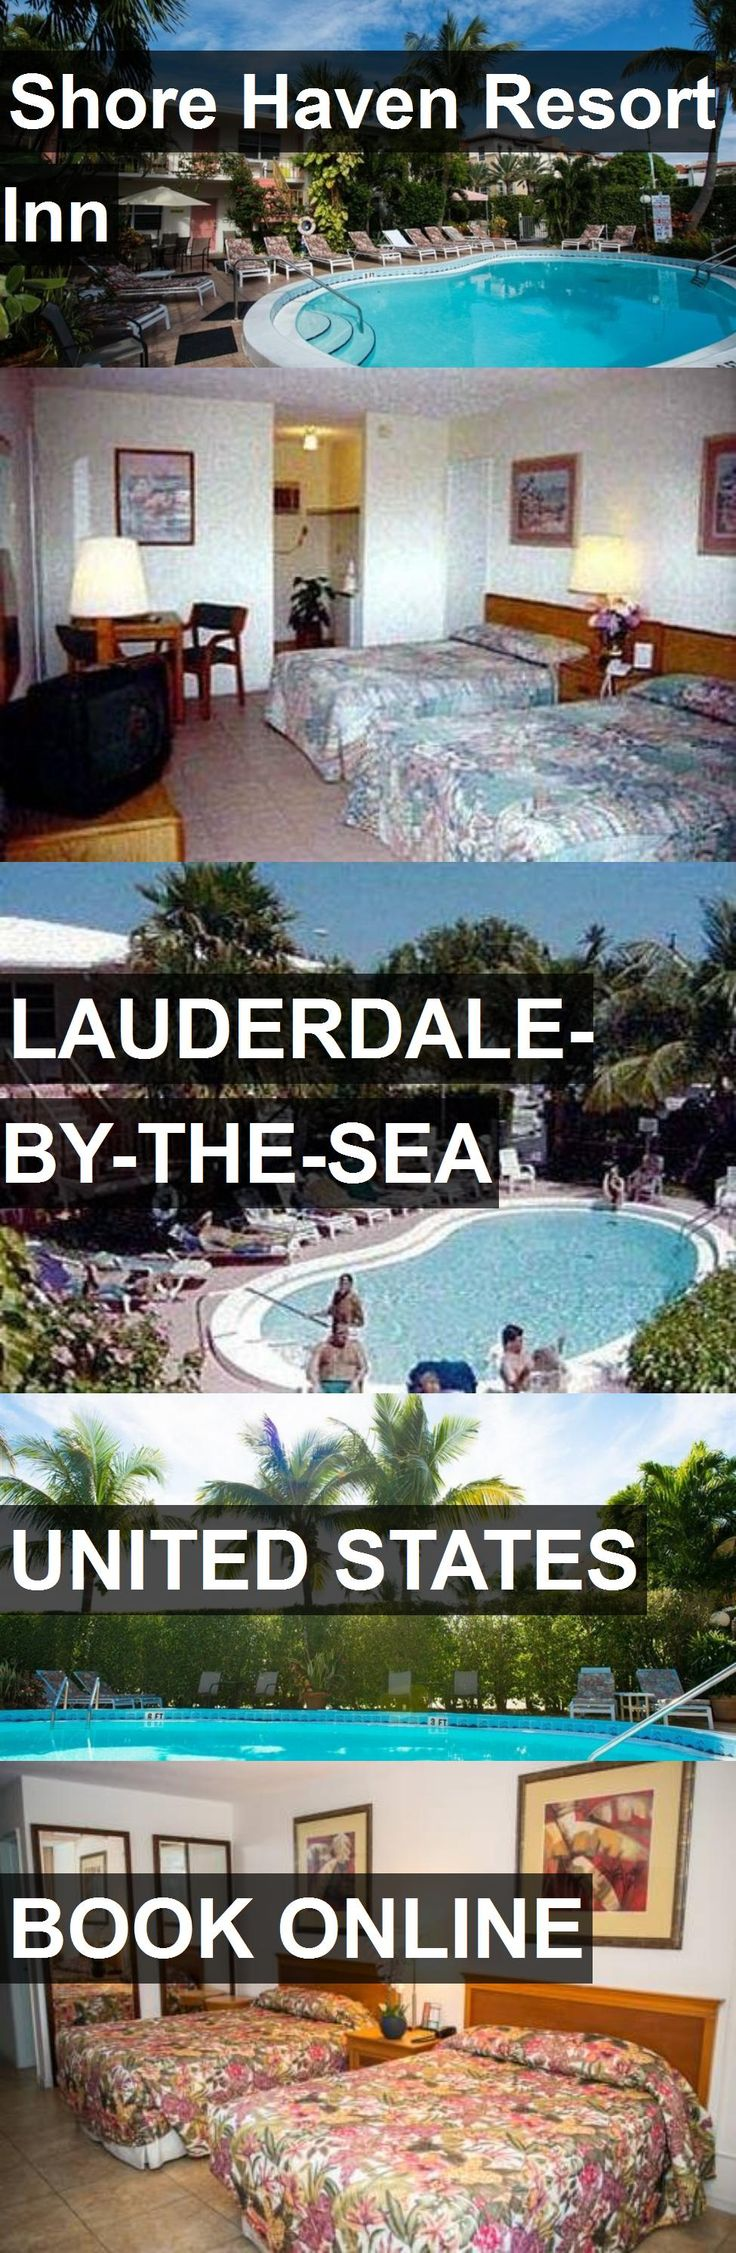 Hotel Shore Haven Resort Inn in Lauderdale-By-The-Sea, United States. For more information, photos, reviews and best prices please follow the link. #UnitedStates #Lauderdale-By-The-Sea #travel #vacation #hotel